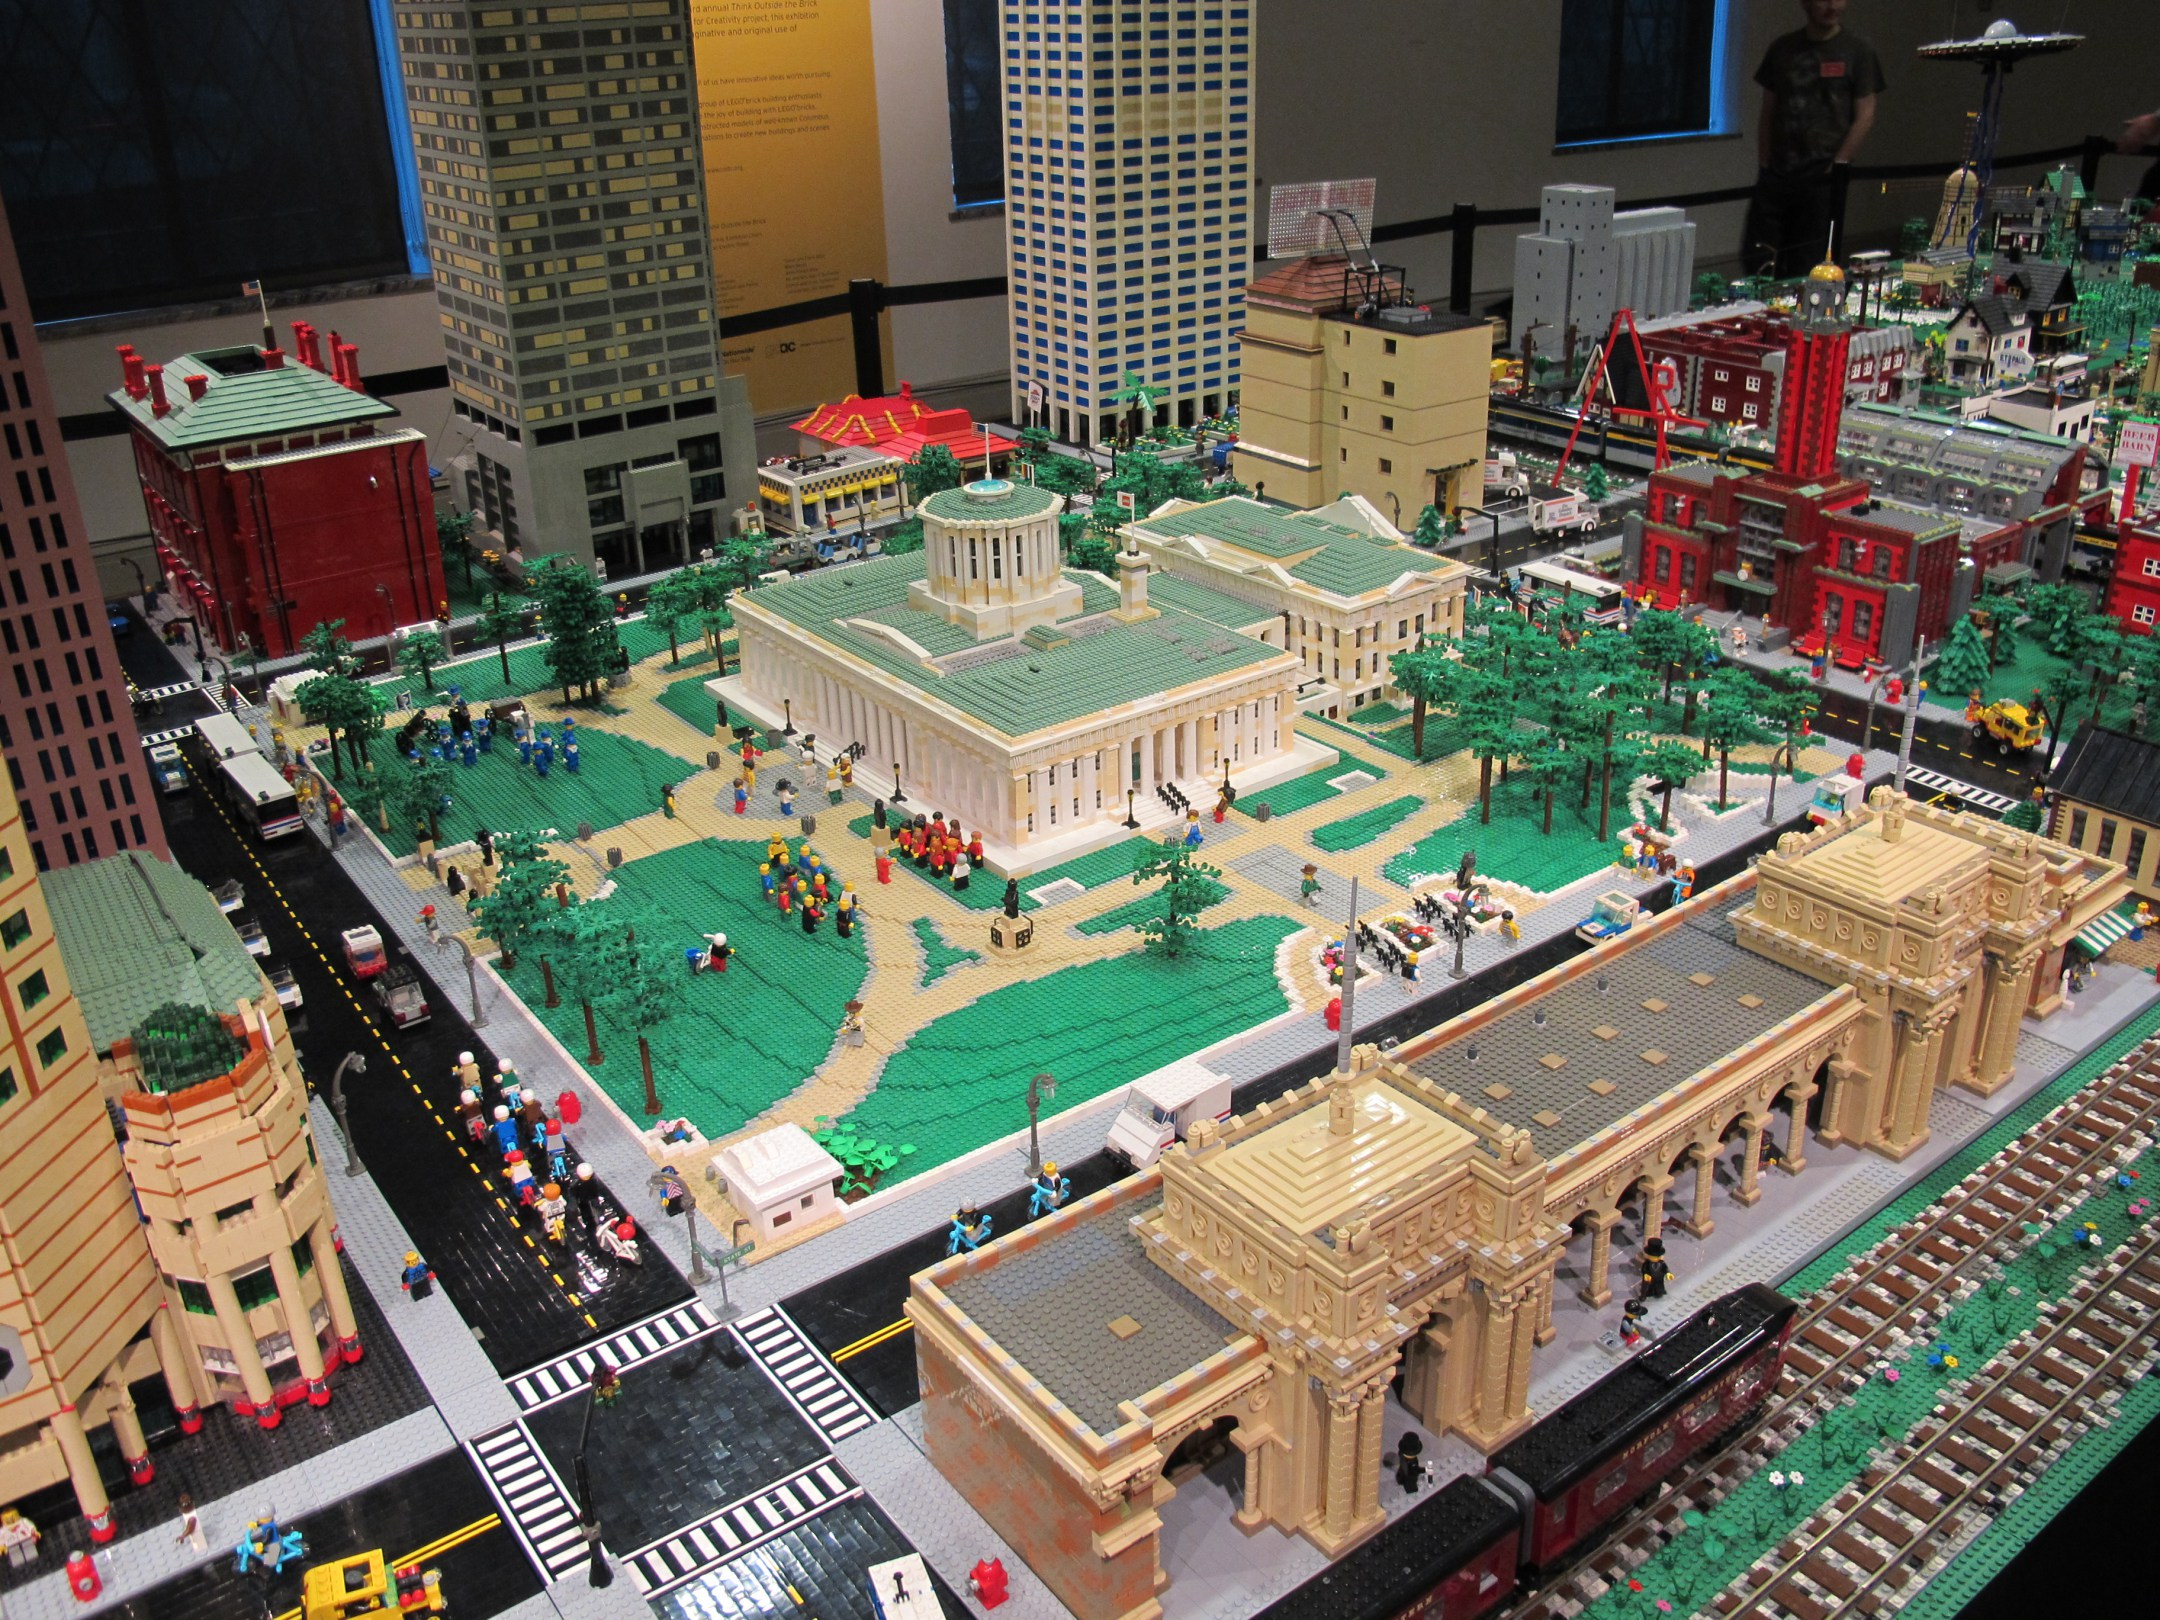 Lego sculpture depicting the Columbus downtown